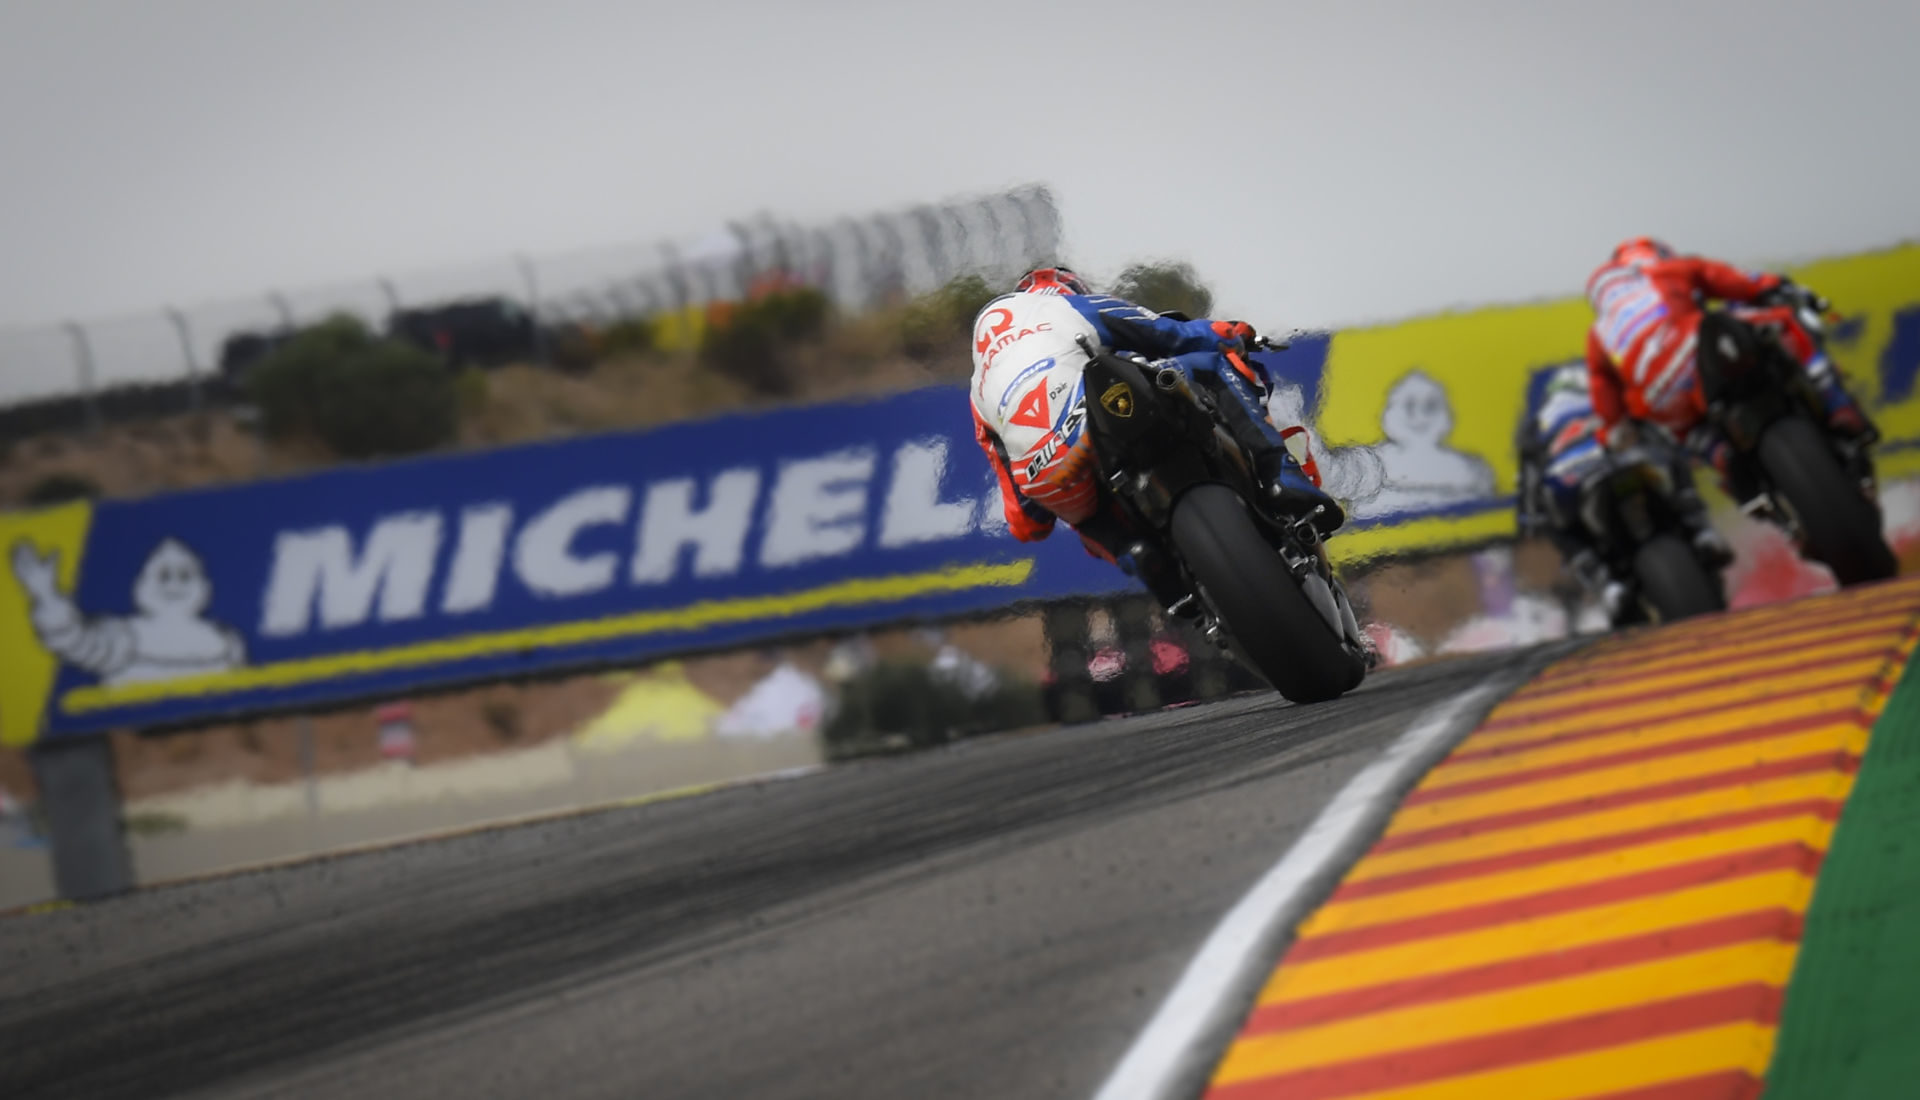 Curbings are part of the racetrack, but the green section to the right of the curbing is beyond the limits of the track at Motorland Aragon. Photo courtesy of Dorna.